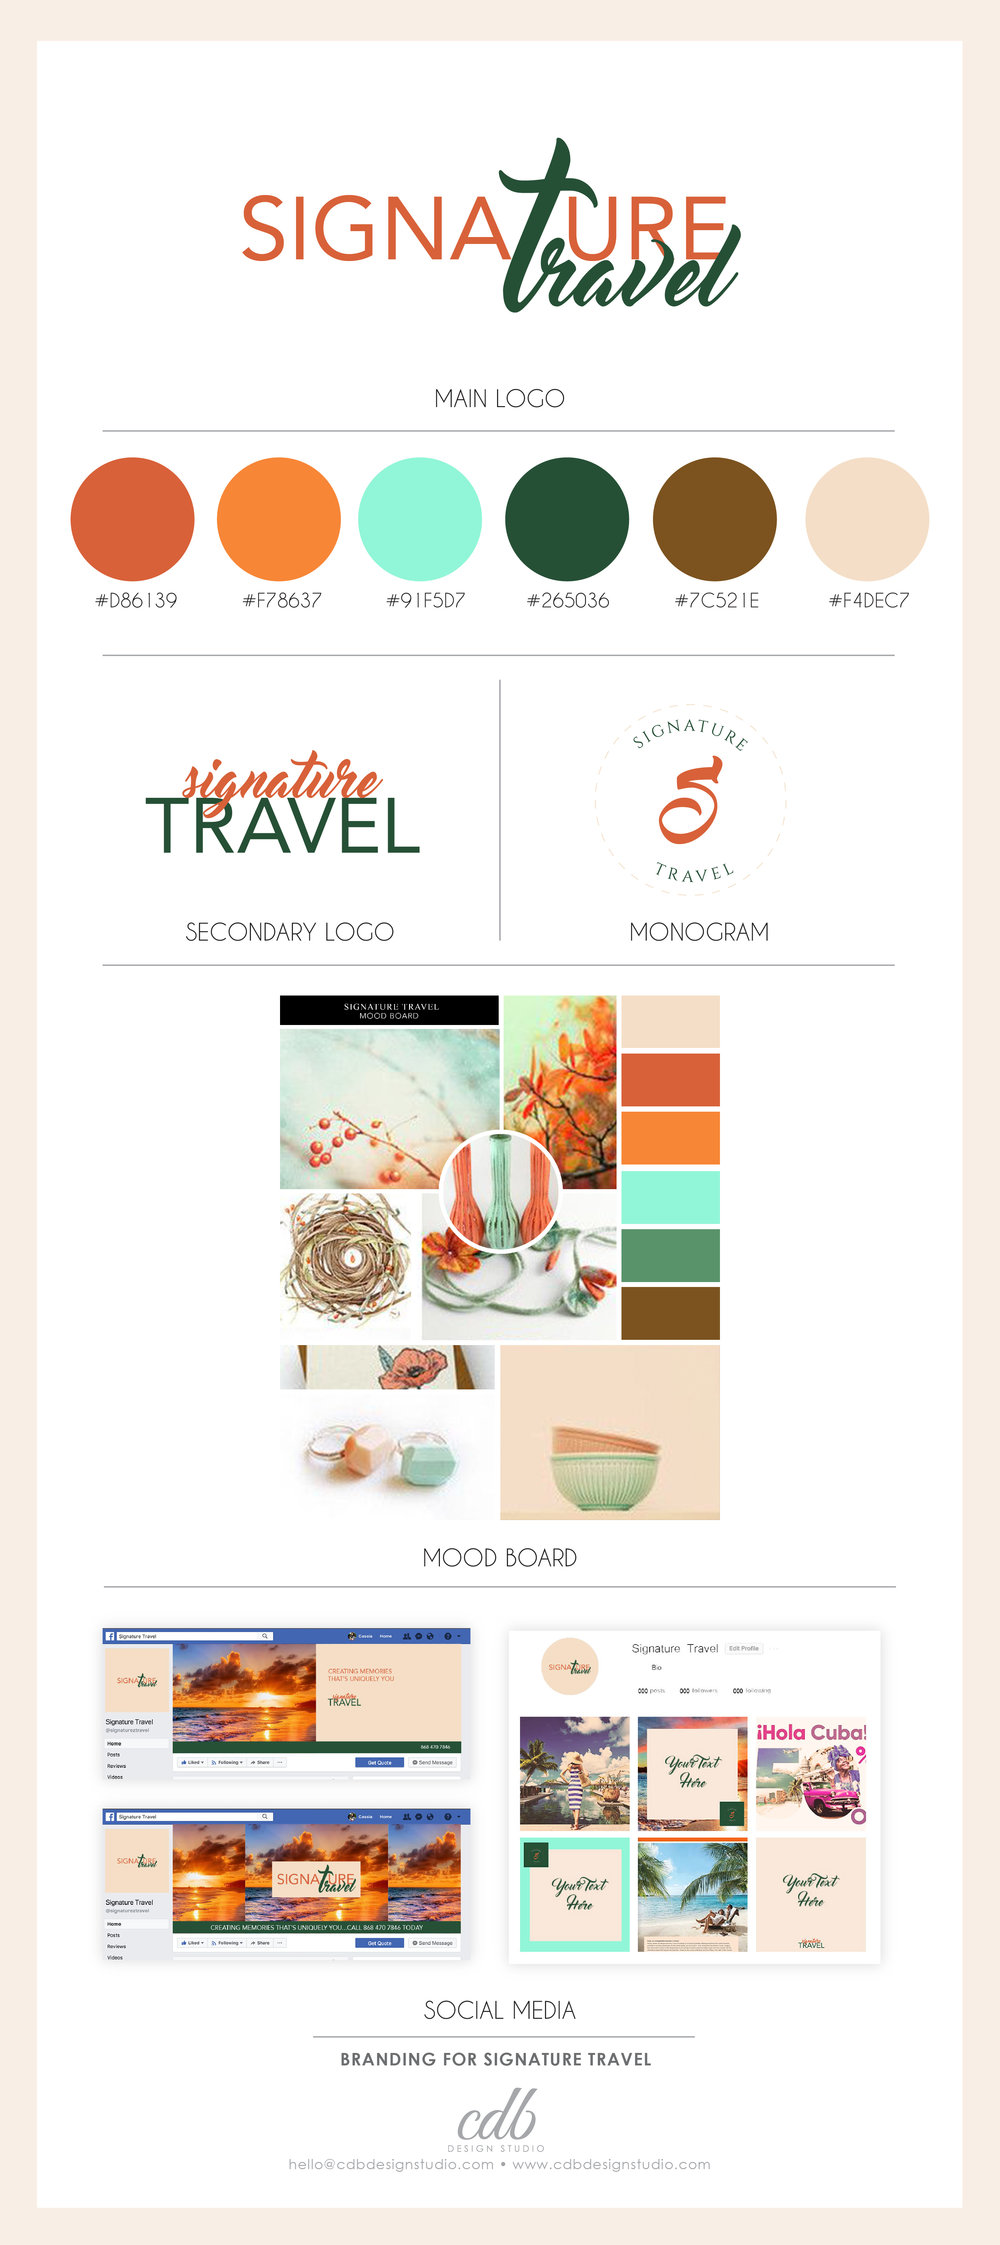 Signature Travel Brand Identity Design Case Study Branding Queen